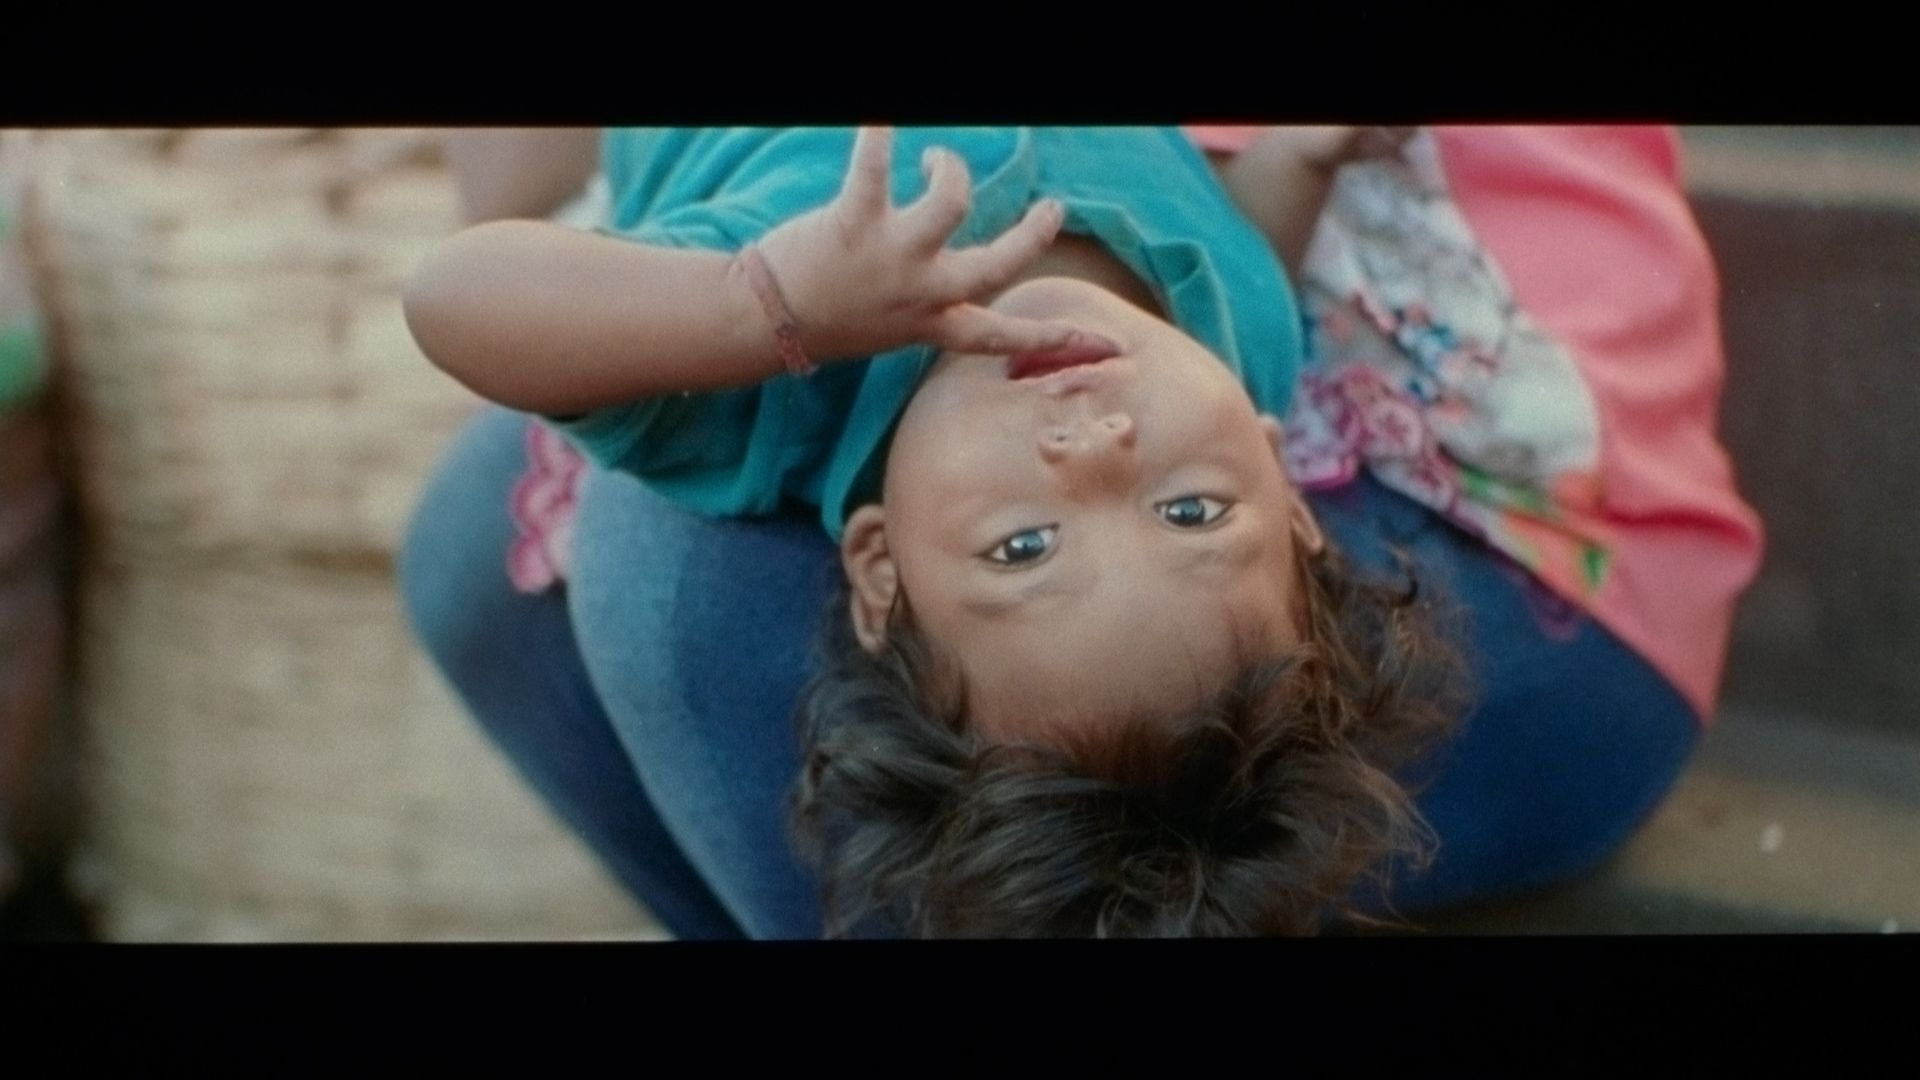 young kid laying in a woman's arms looking at camera upside down with fingers in their mouth singer Karim Ouellet music video of La Mer A Boire filmed by Les Gamins